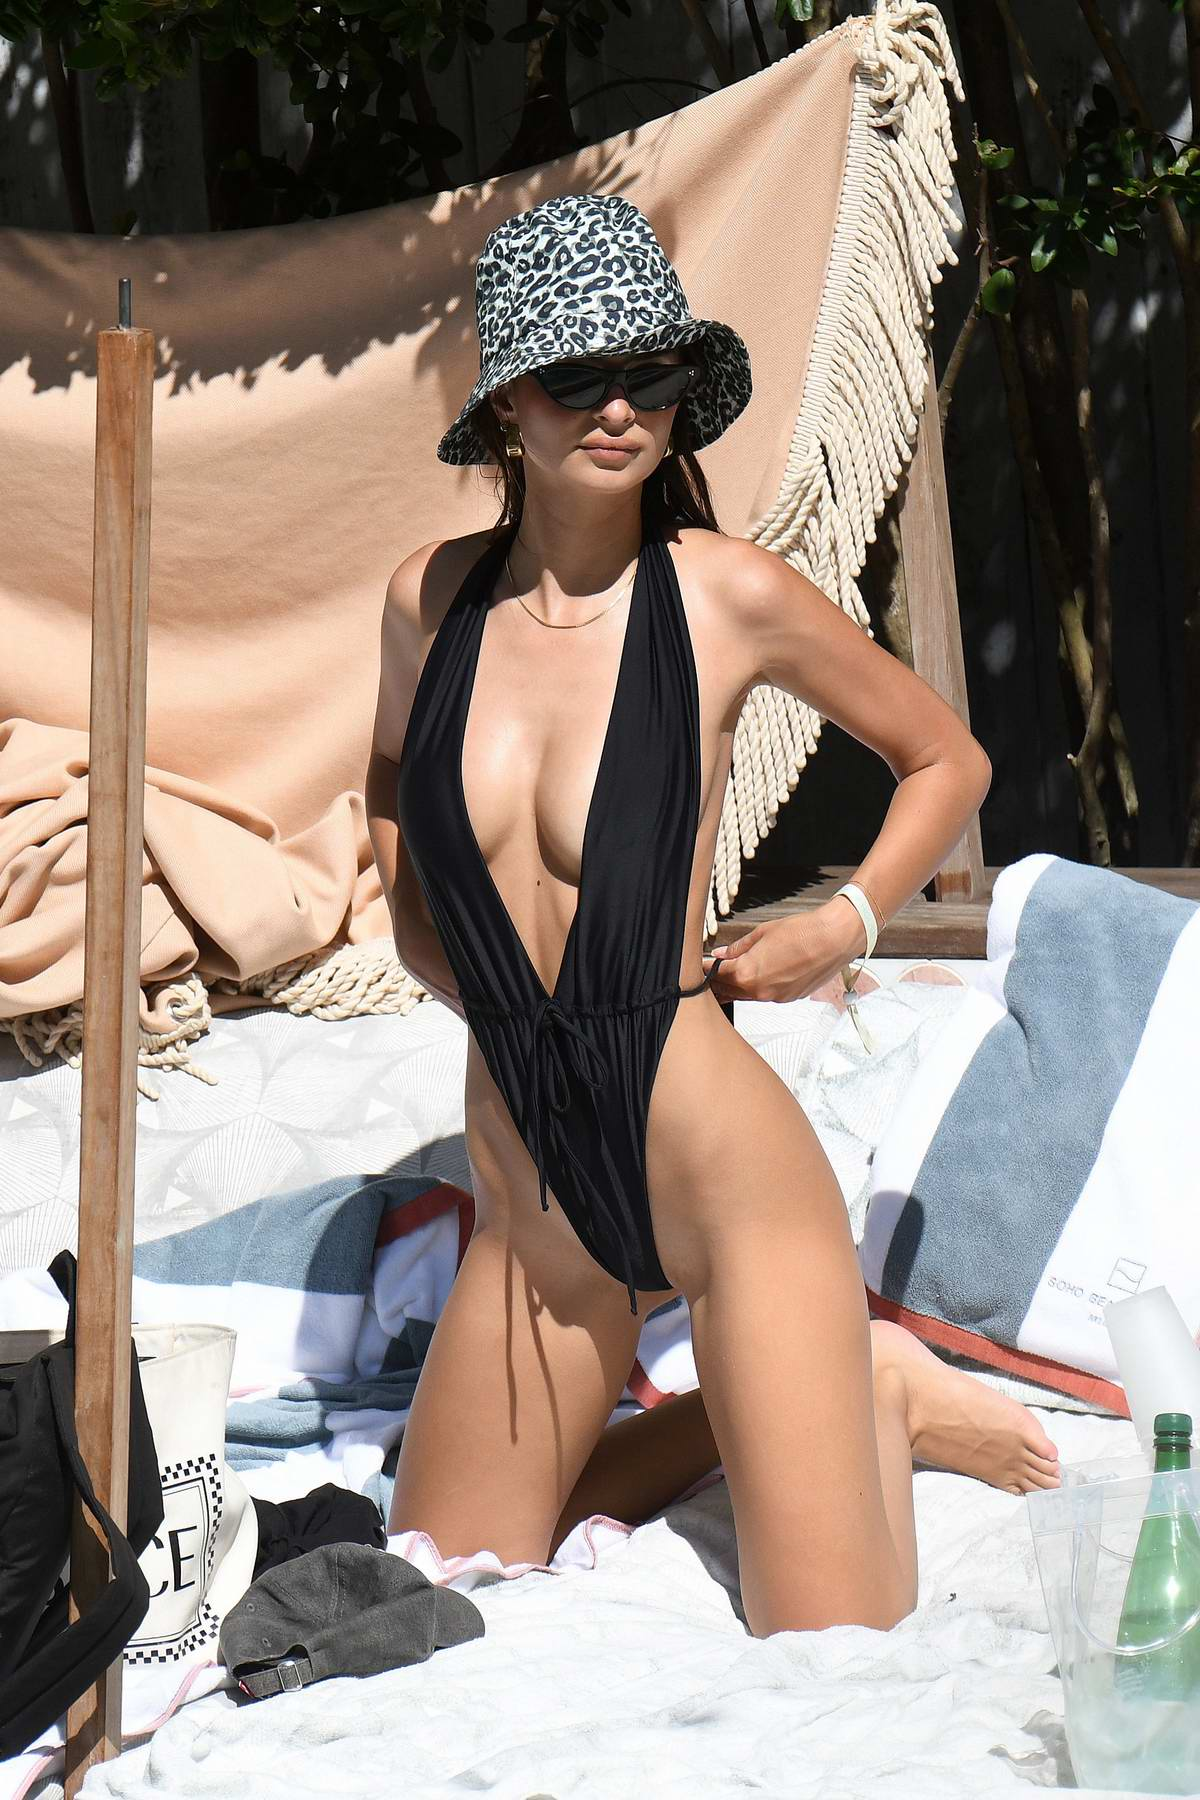 Emily Ratajkowski stuns in a black monokini swimsuit during relaxing pool day in Miami, Florida